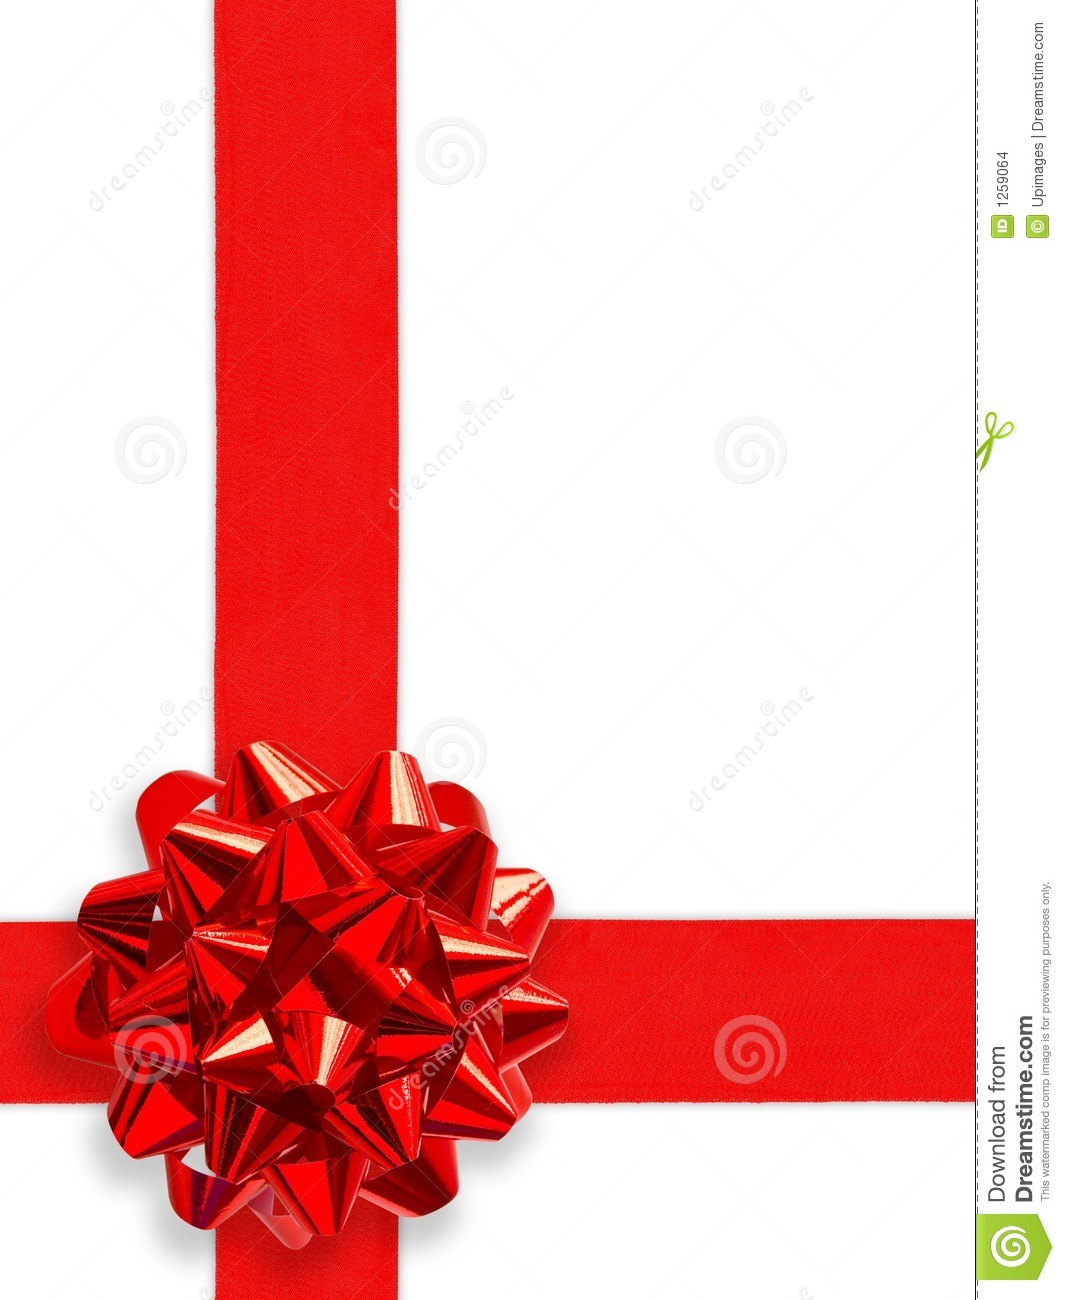 Red gift bows border with clipping path for easy background removing - Background Clipping Gift Path Red